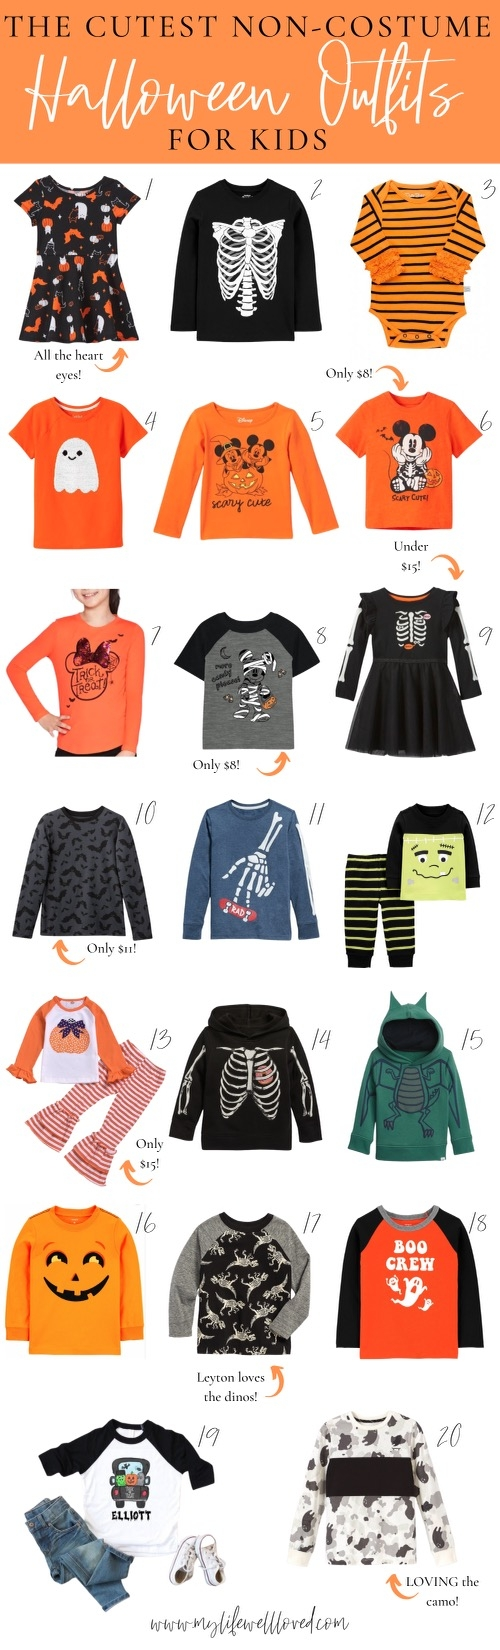 Halloween Outfits For Boys & Girls by Alabama Family + Style blogger, Heather Brown // My Life Well Loved